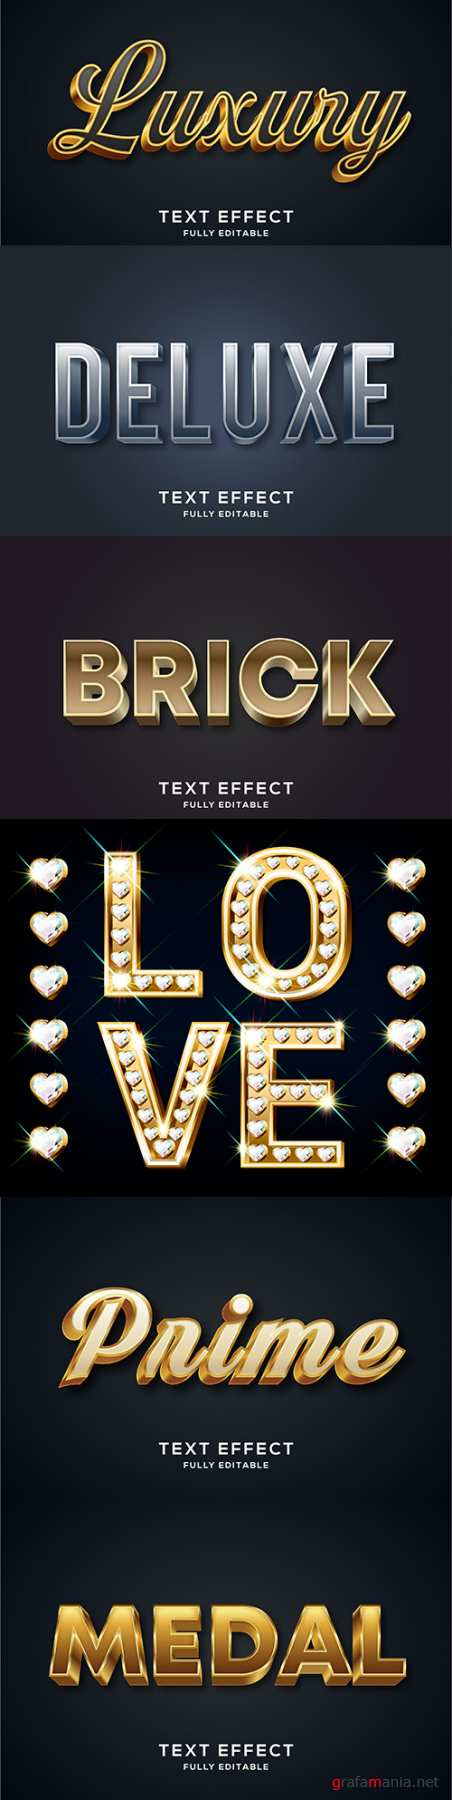 Editable font and 3d effect text design collection illustration 63